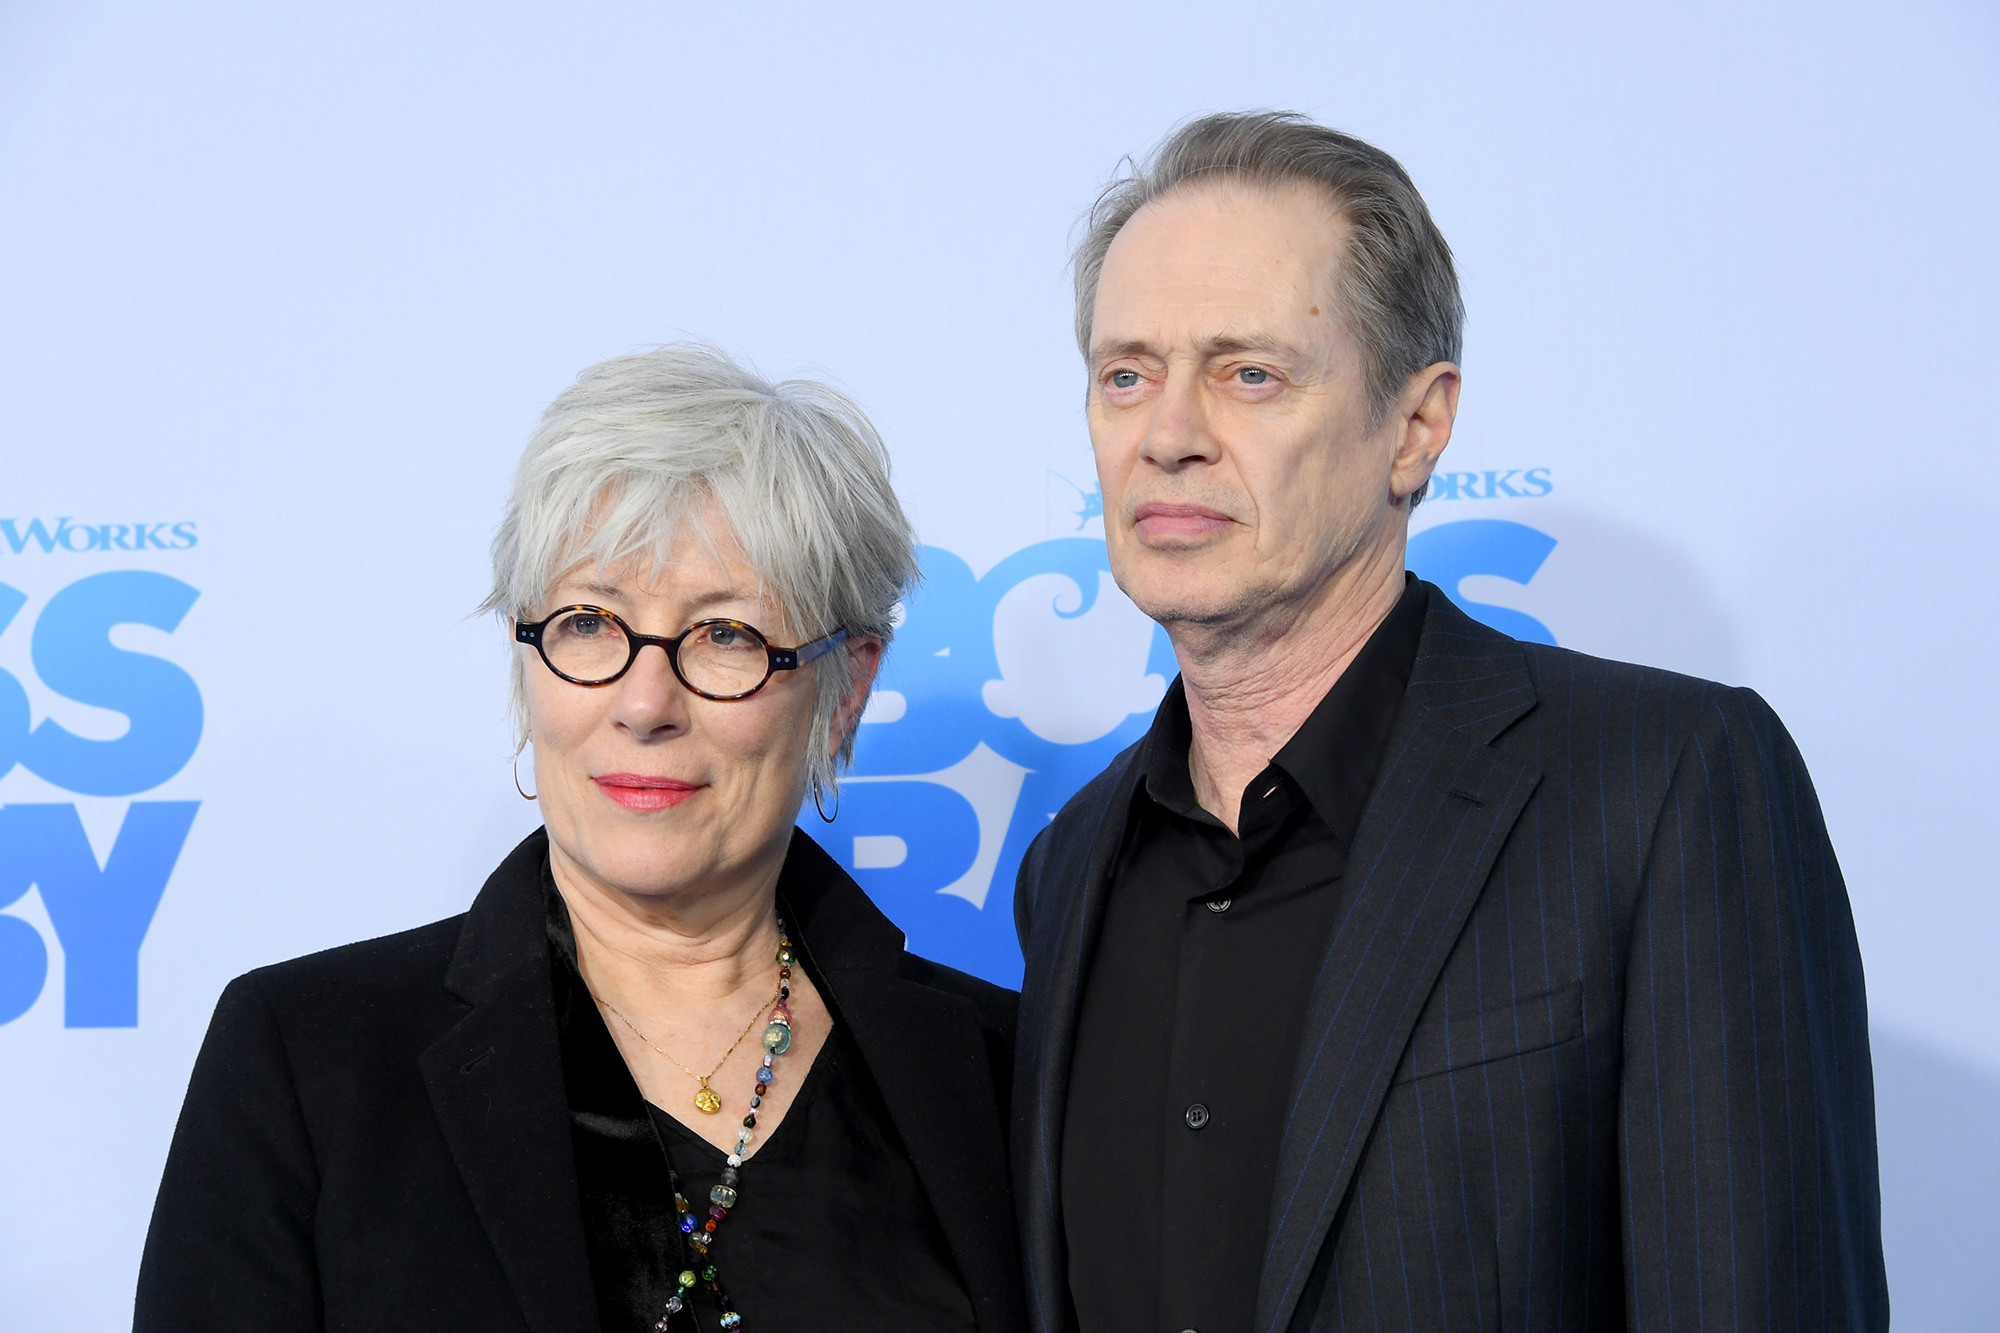 Steve Buscemi Thanks Late Wife Jo Andres for Being His 'Biggest Supporter' - Jo Andres and Steve Buscemi.